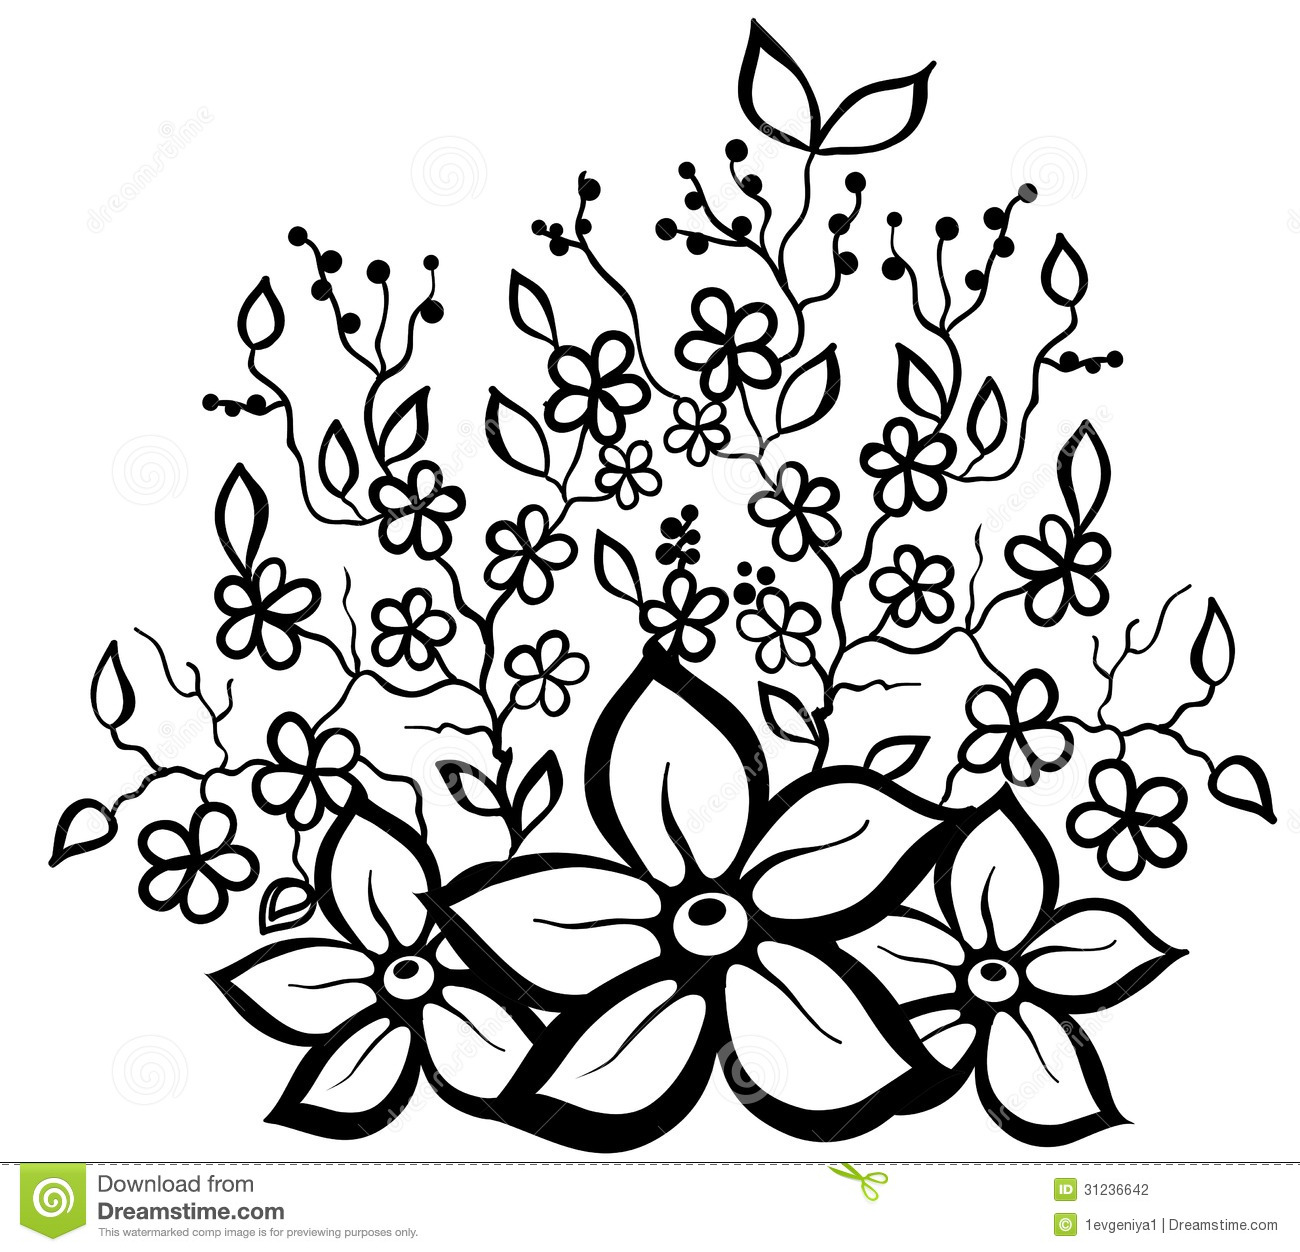 Flower design pattern black and white clipart best - Design black and white ...